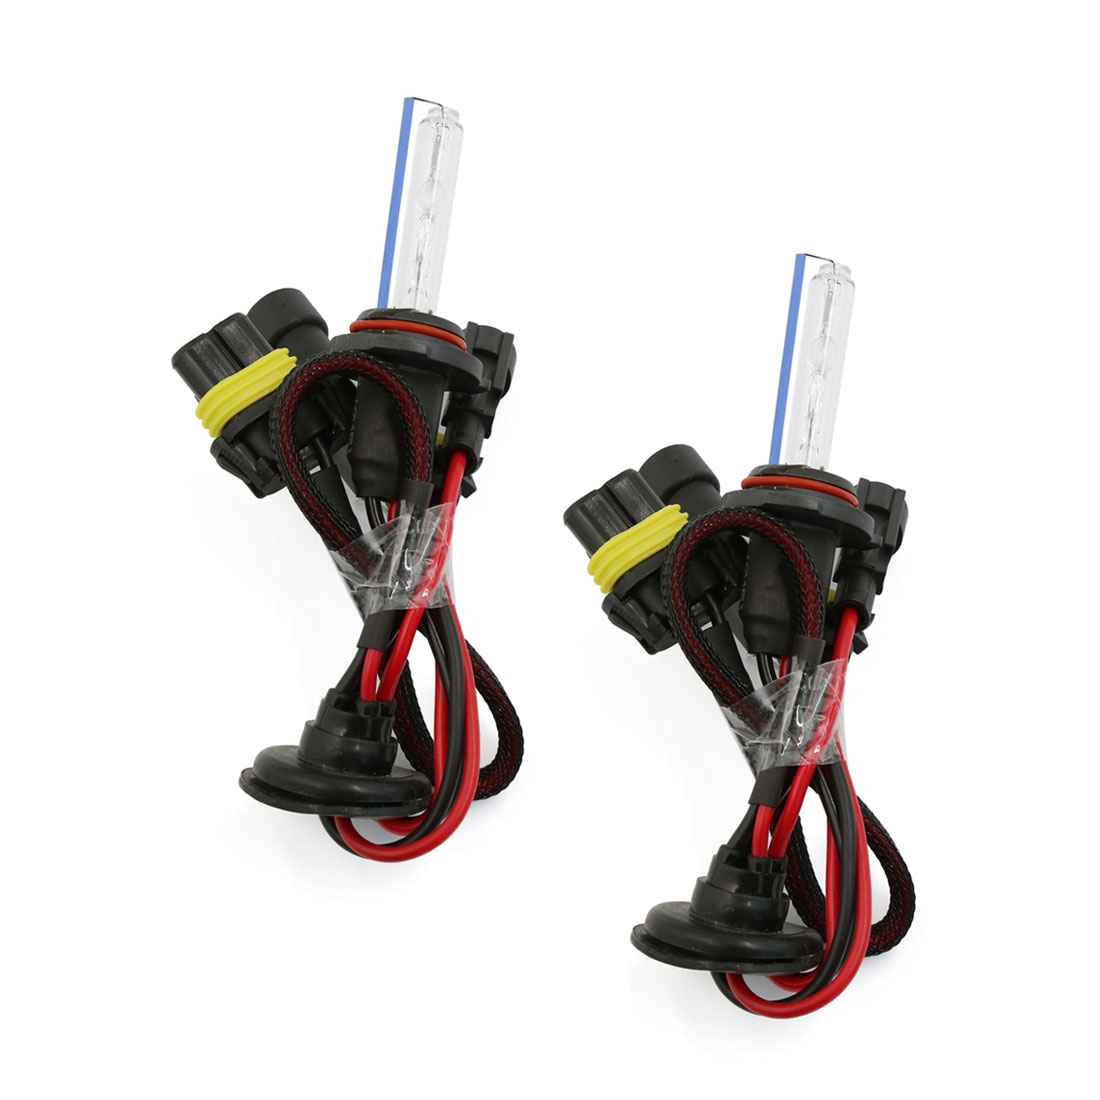 2 Pcs DC 12V 35W 8000K 9006 Car HID Xenon Bulb Headlight Lamp White Internal